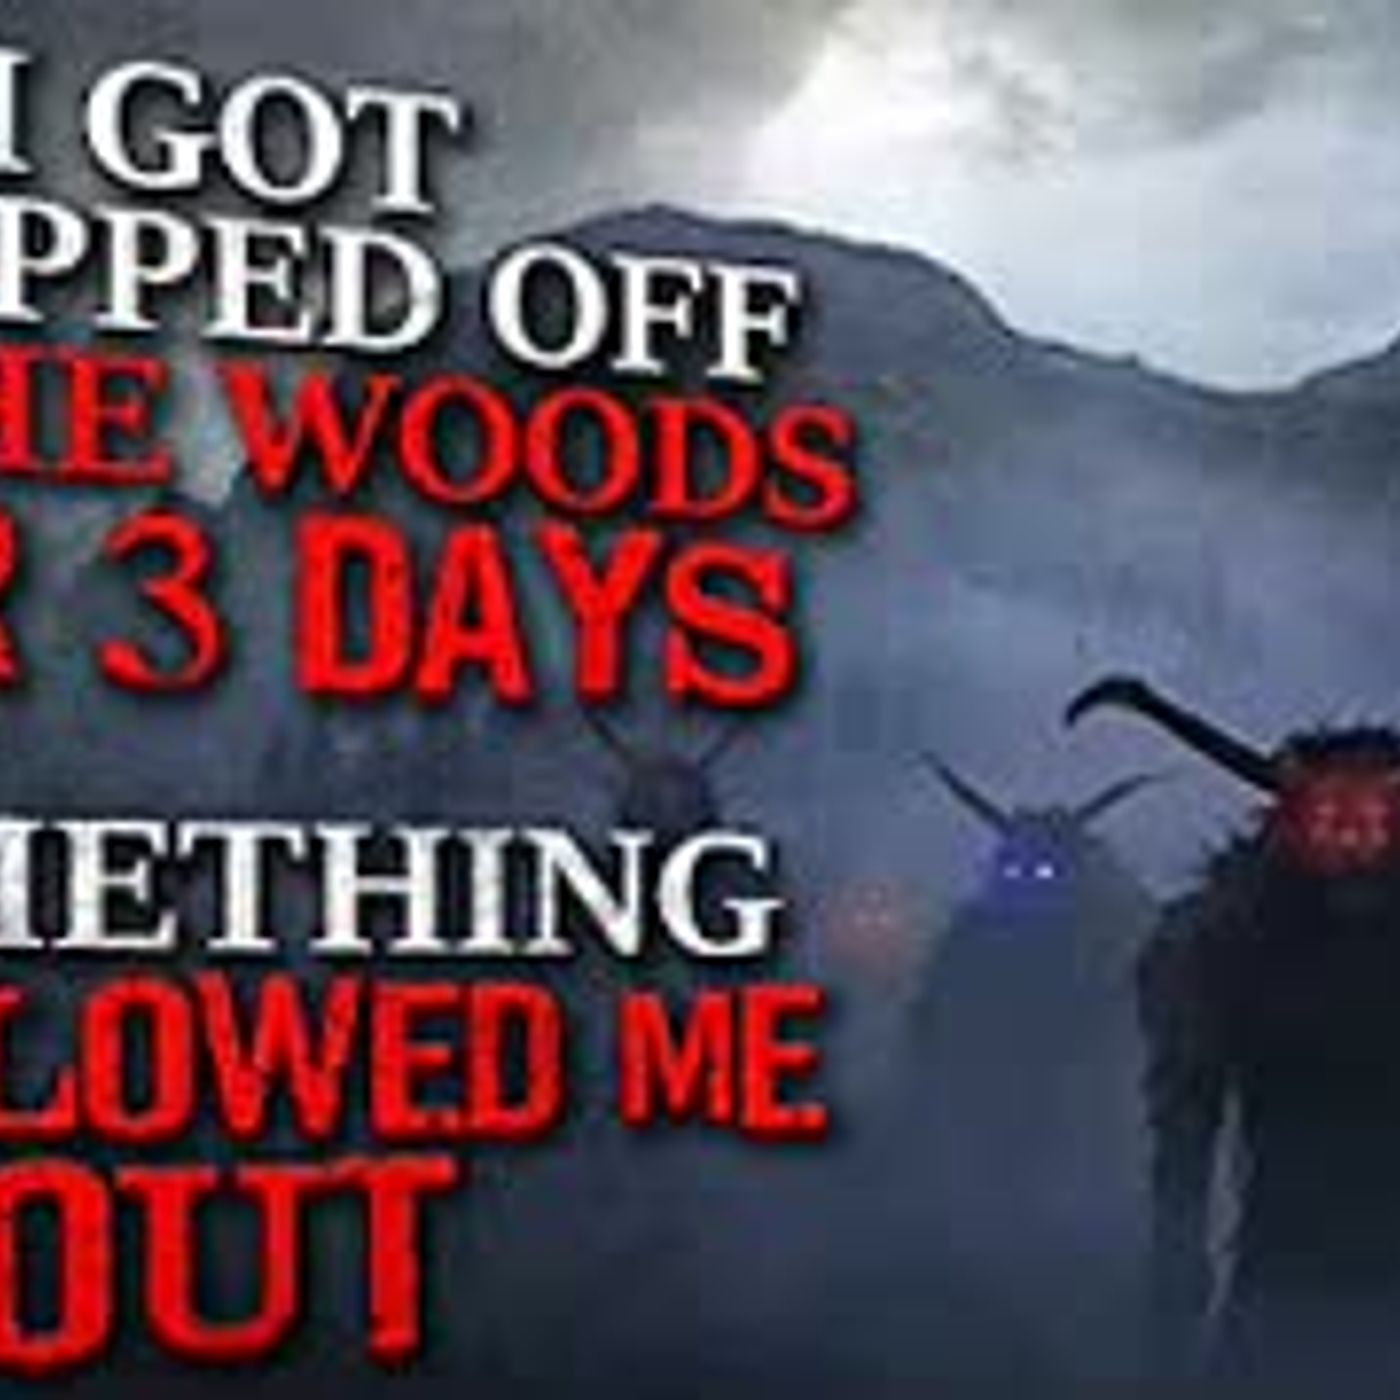 """I was dropped off in the woods for three days. Something followed me out"" Creepypasta"